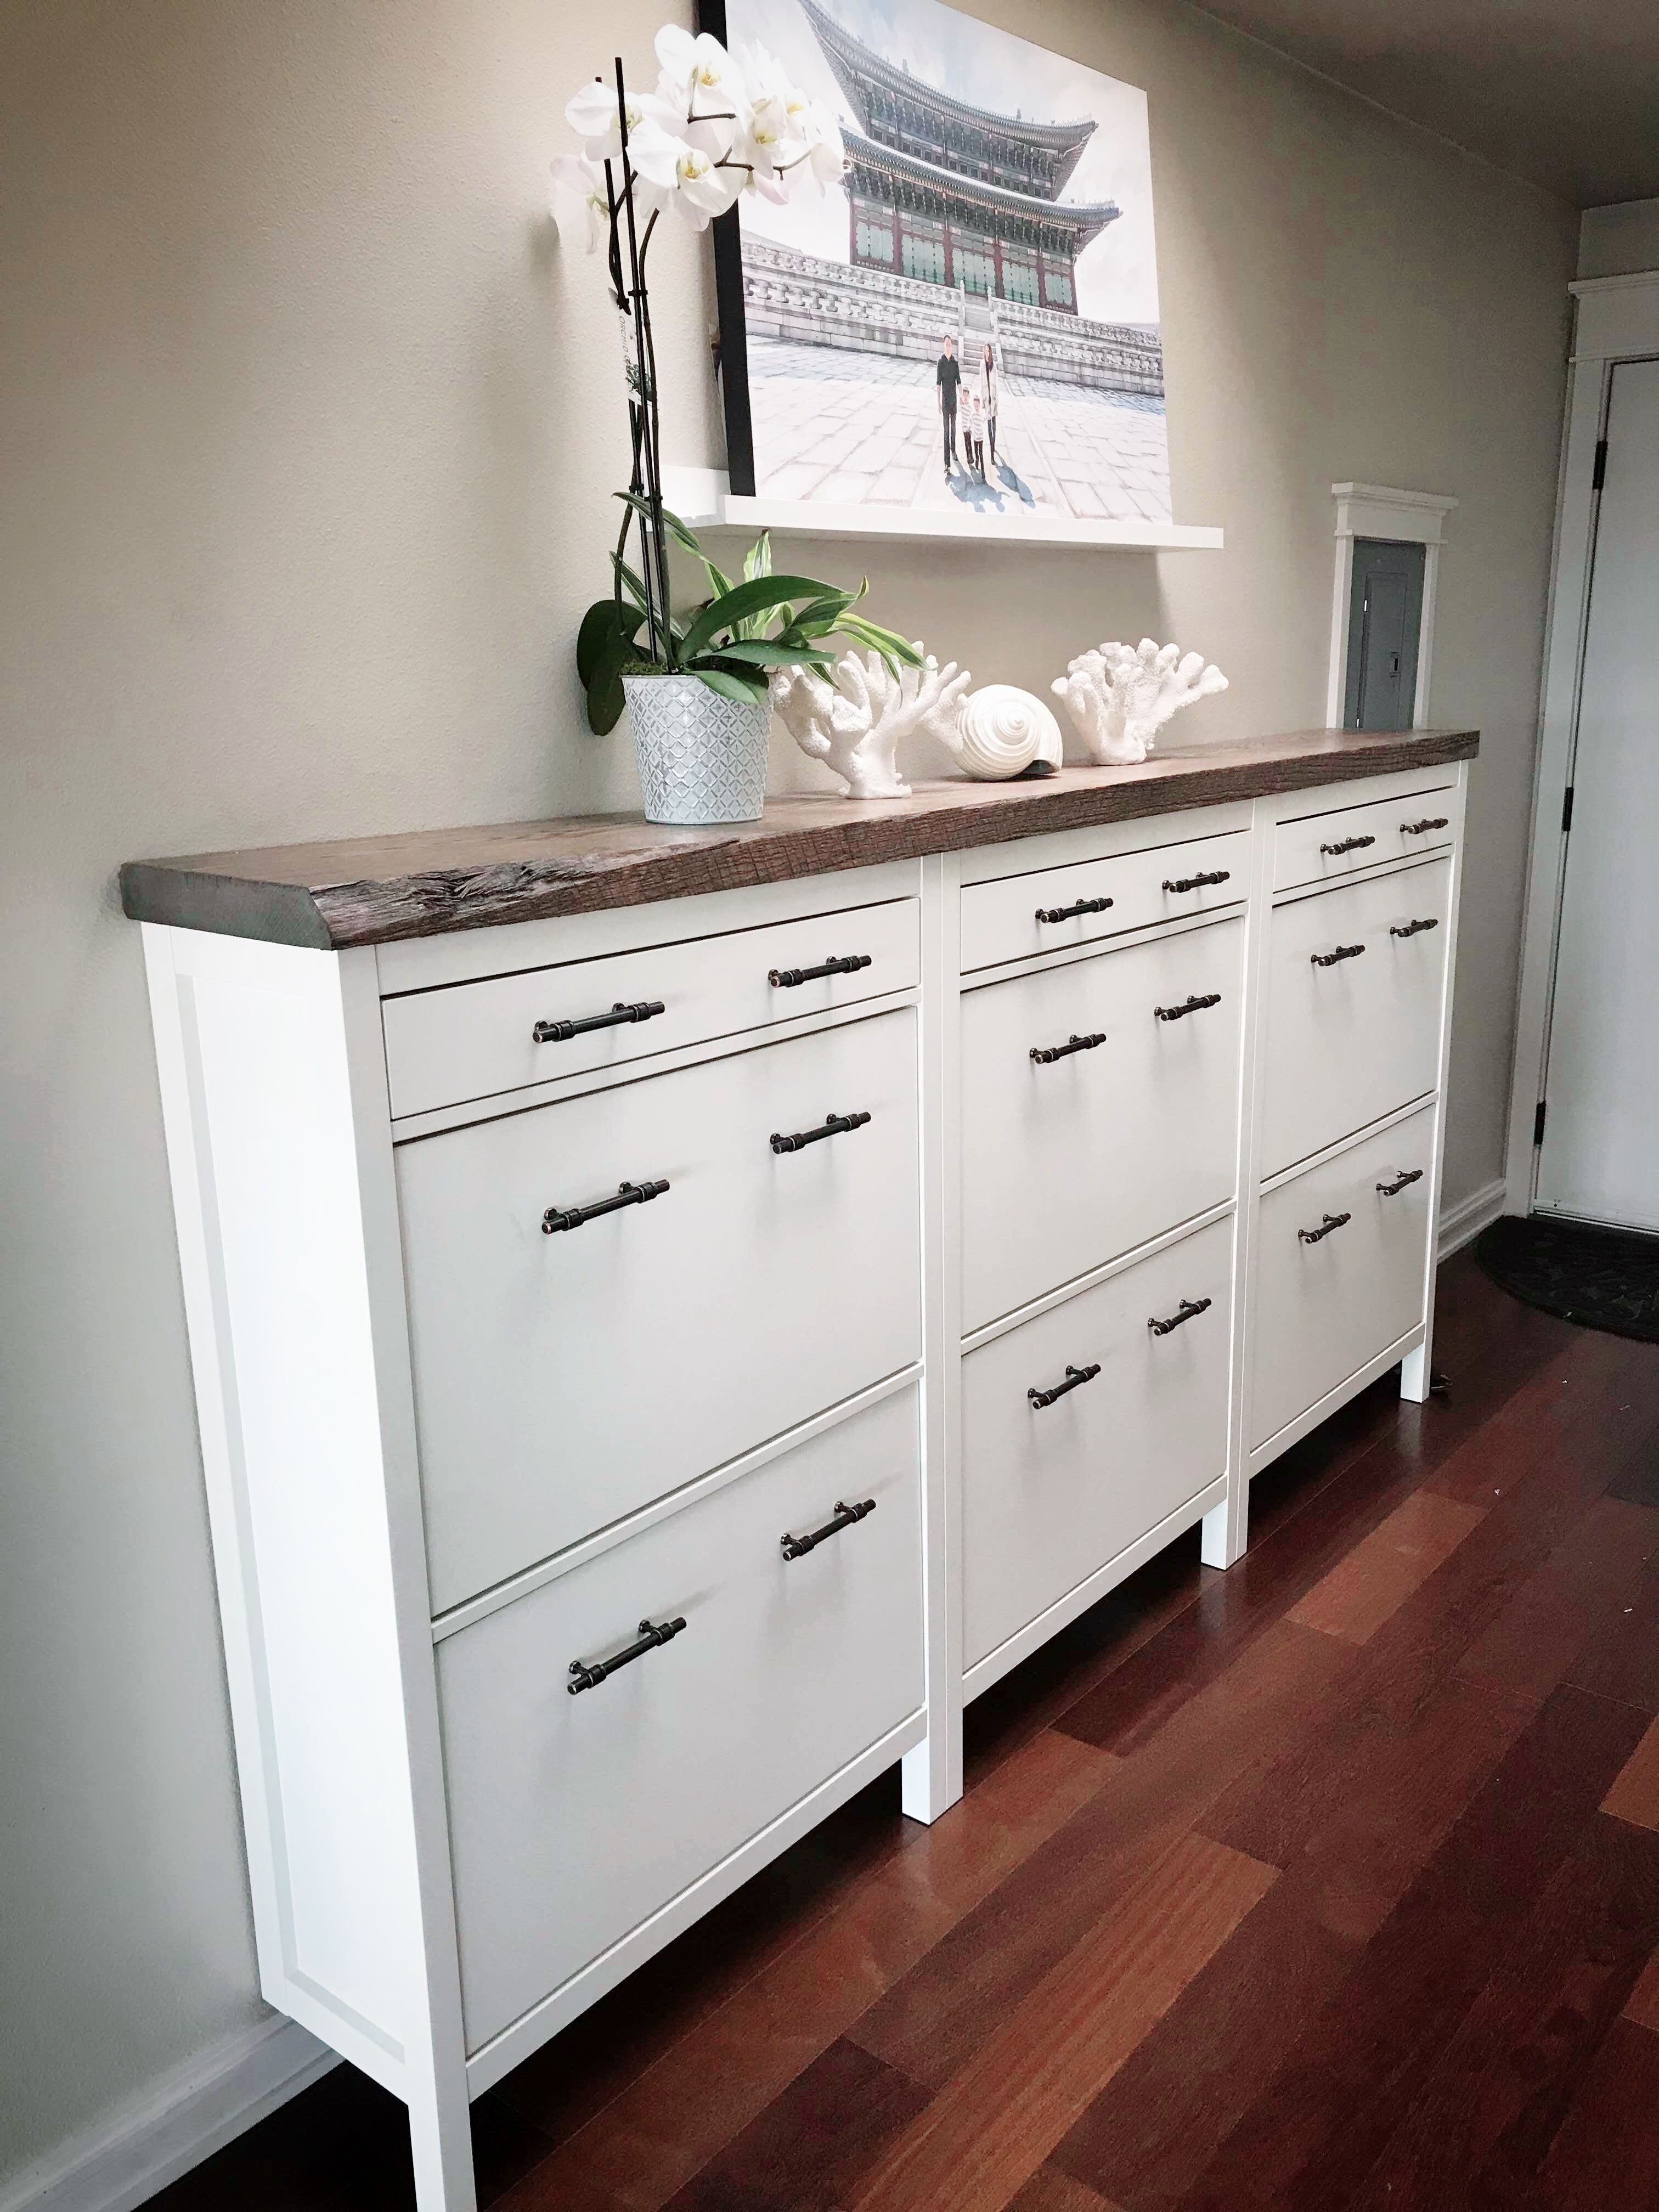 Hemnes Shoe Cabinet With 2 Compartments White 35x50 Ikea Ikea Hemnes Shoe Cabinet Ikea Shoe Cabinet Hemnes Shoe Cabinet